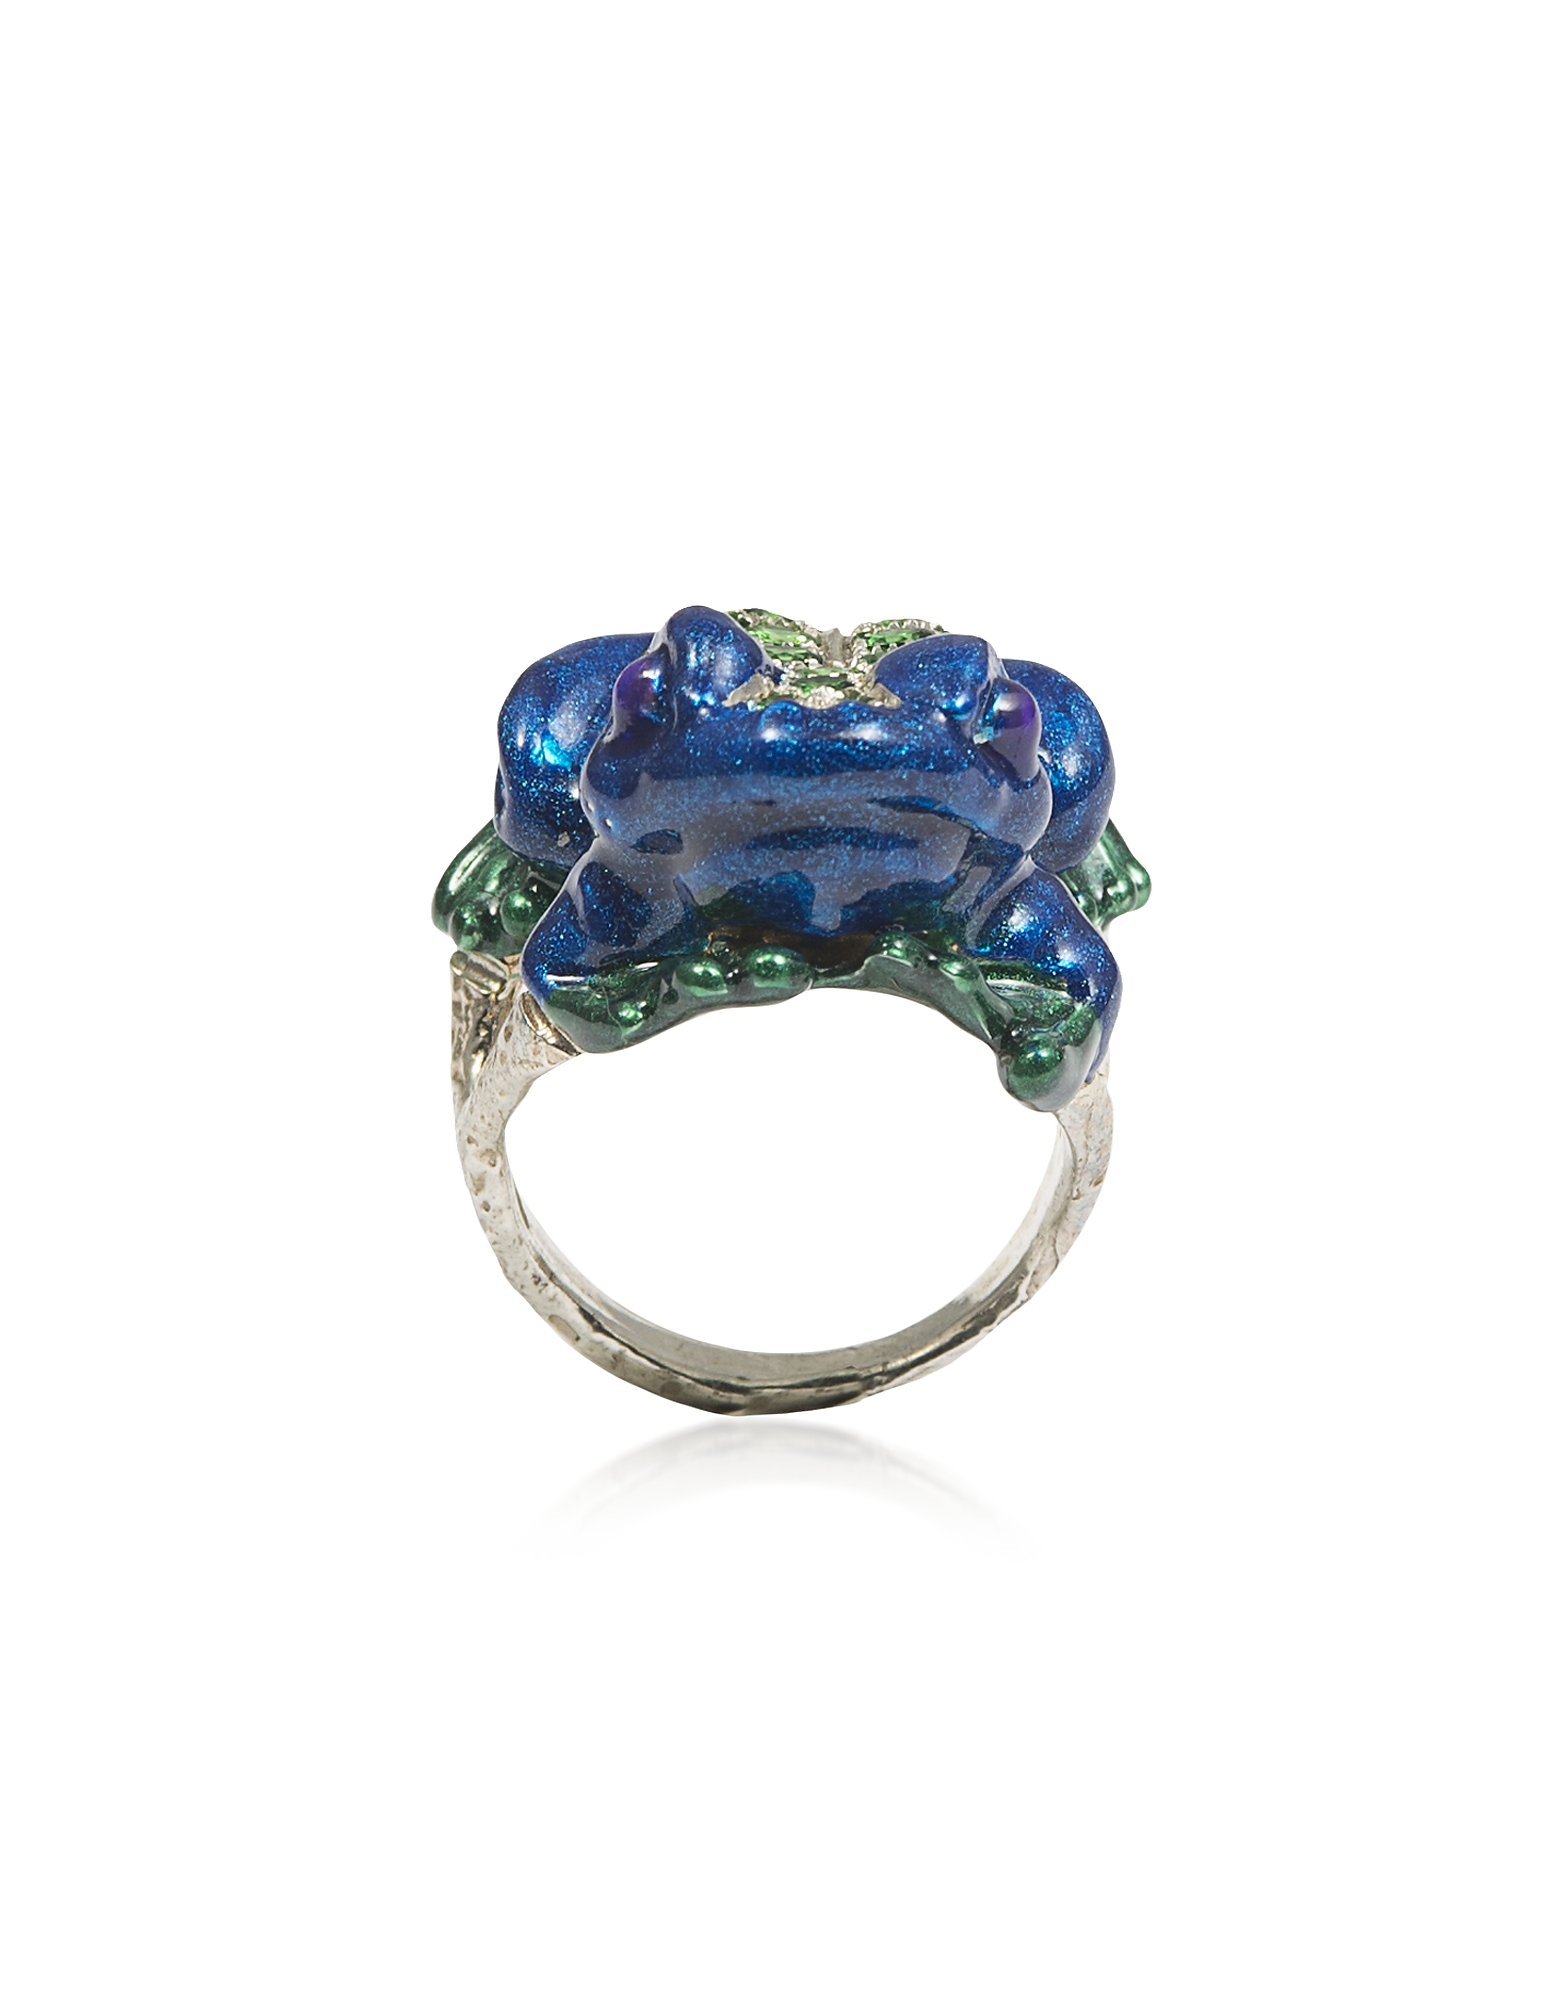 Silver Froggy Ring w/ Pavé Tsavorites And Blue Enamel